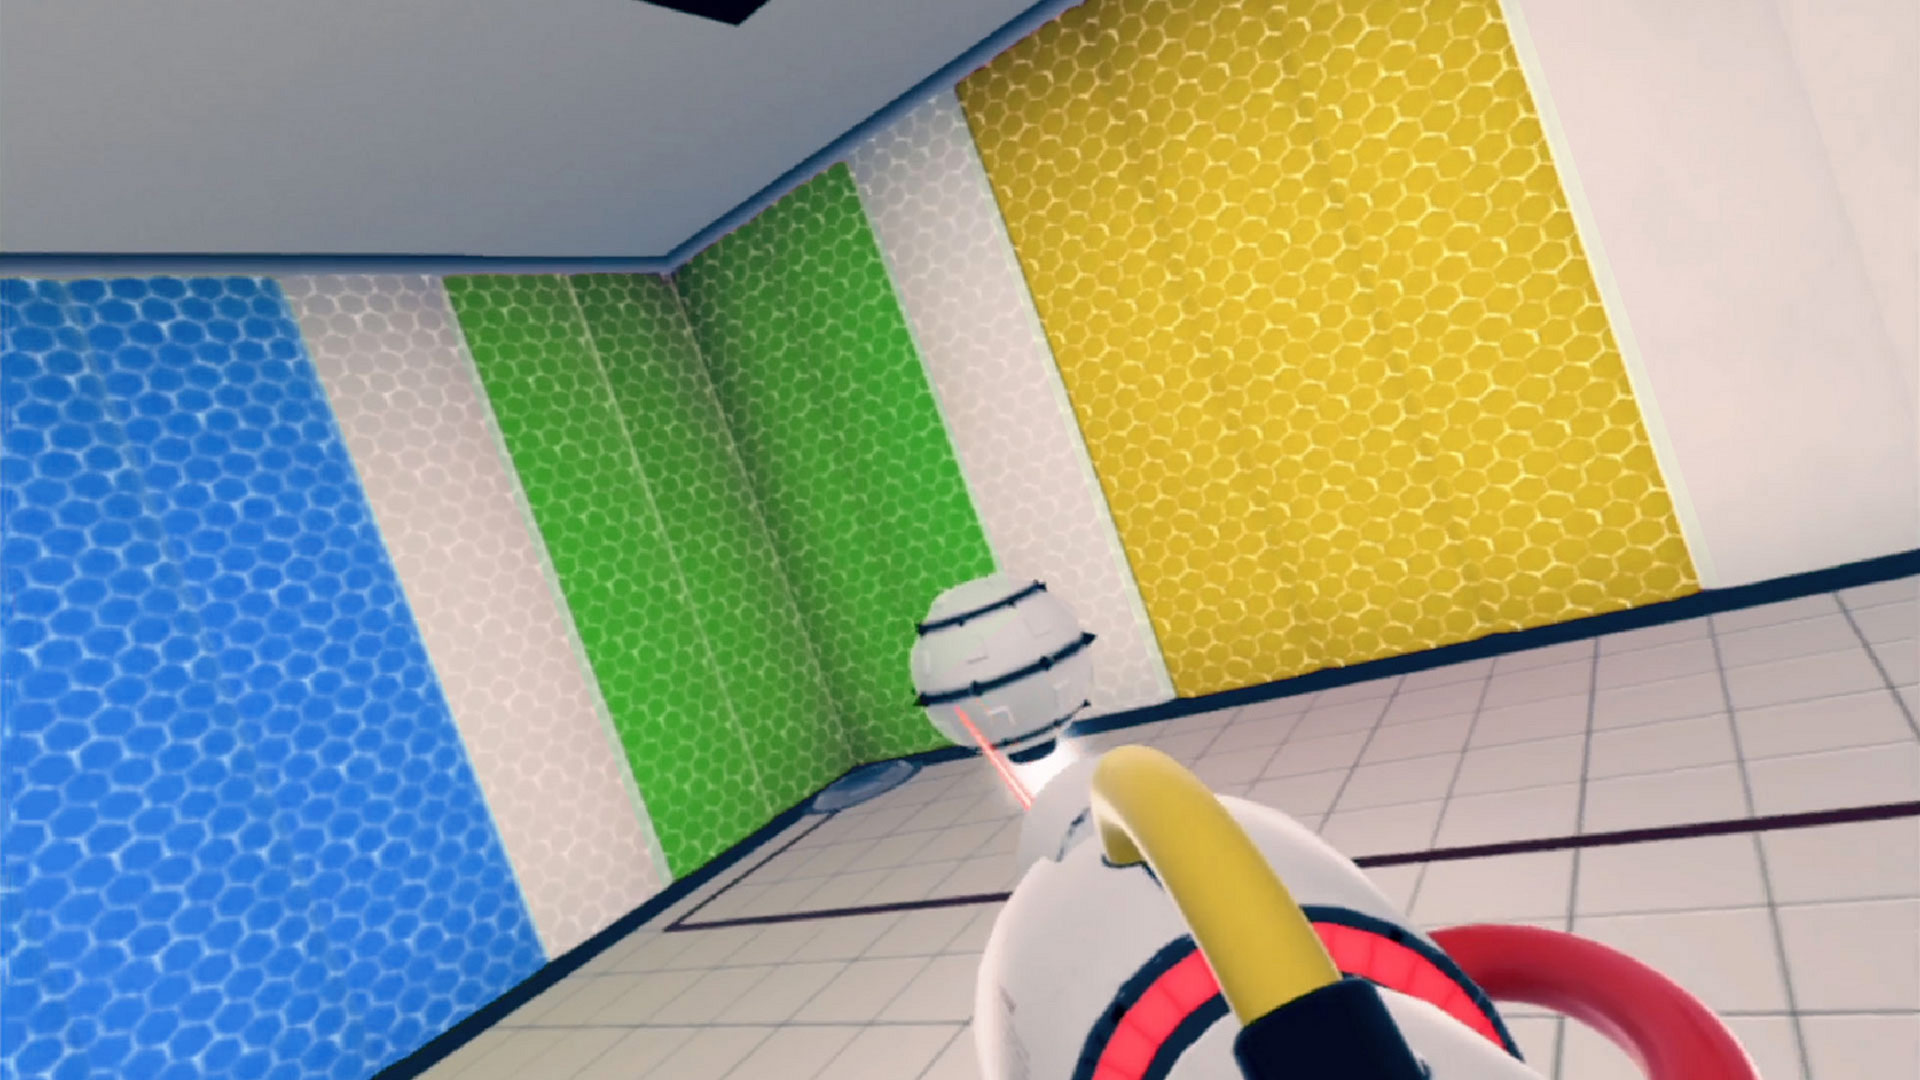 Portal-style Puzzler 'ChromaGun VR' to Launch on PSVR Next Week